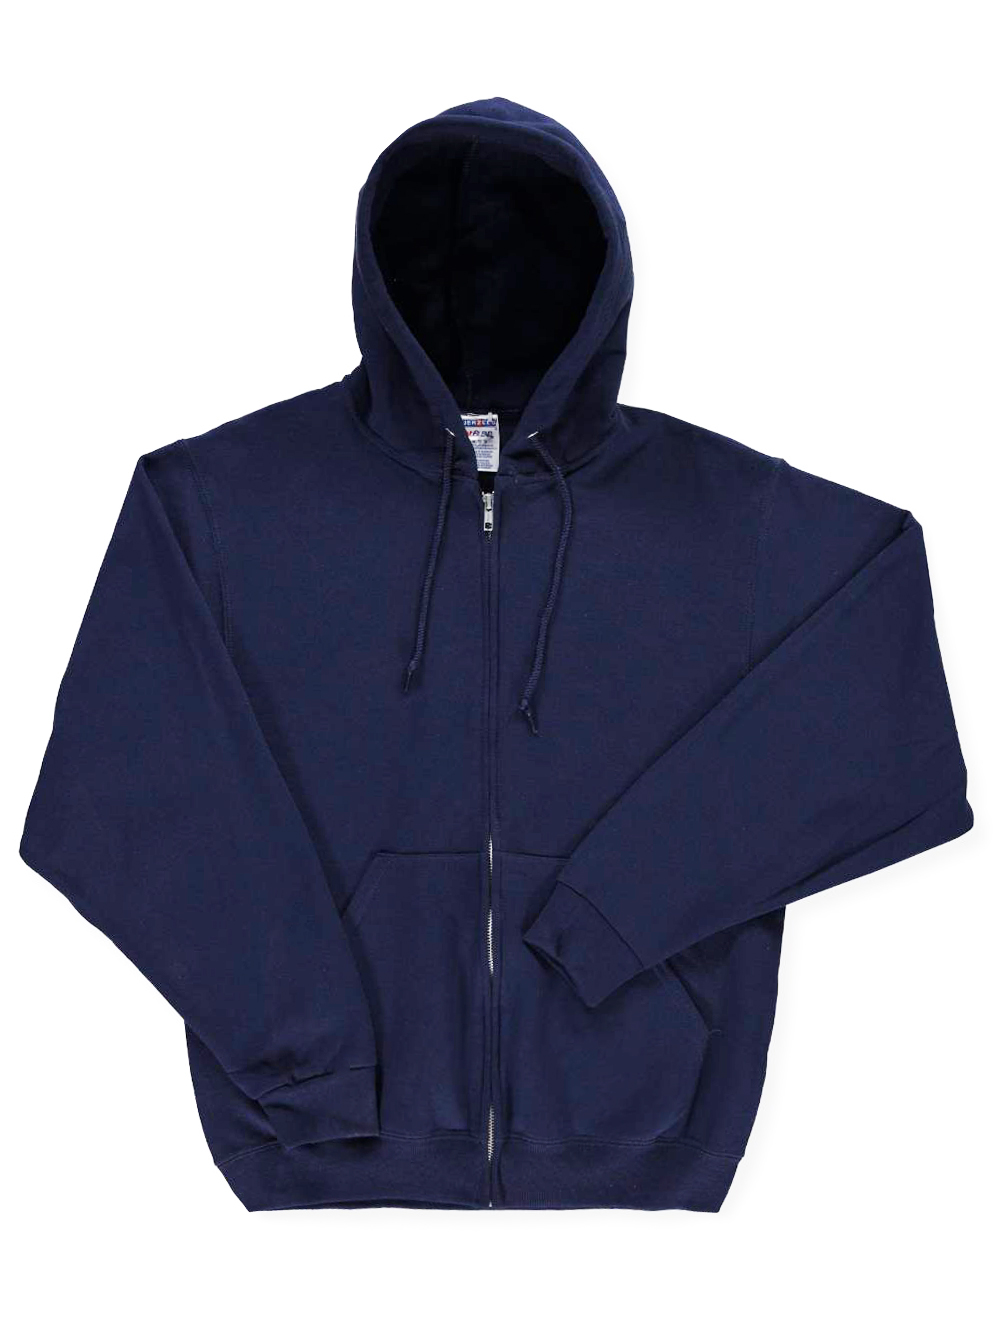 Jerzees Basic Fleece Zippered Hoodie with Drawstrings (Adult Sizes S - XL)